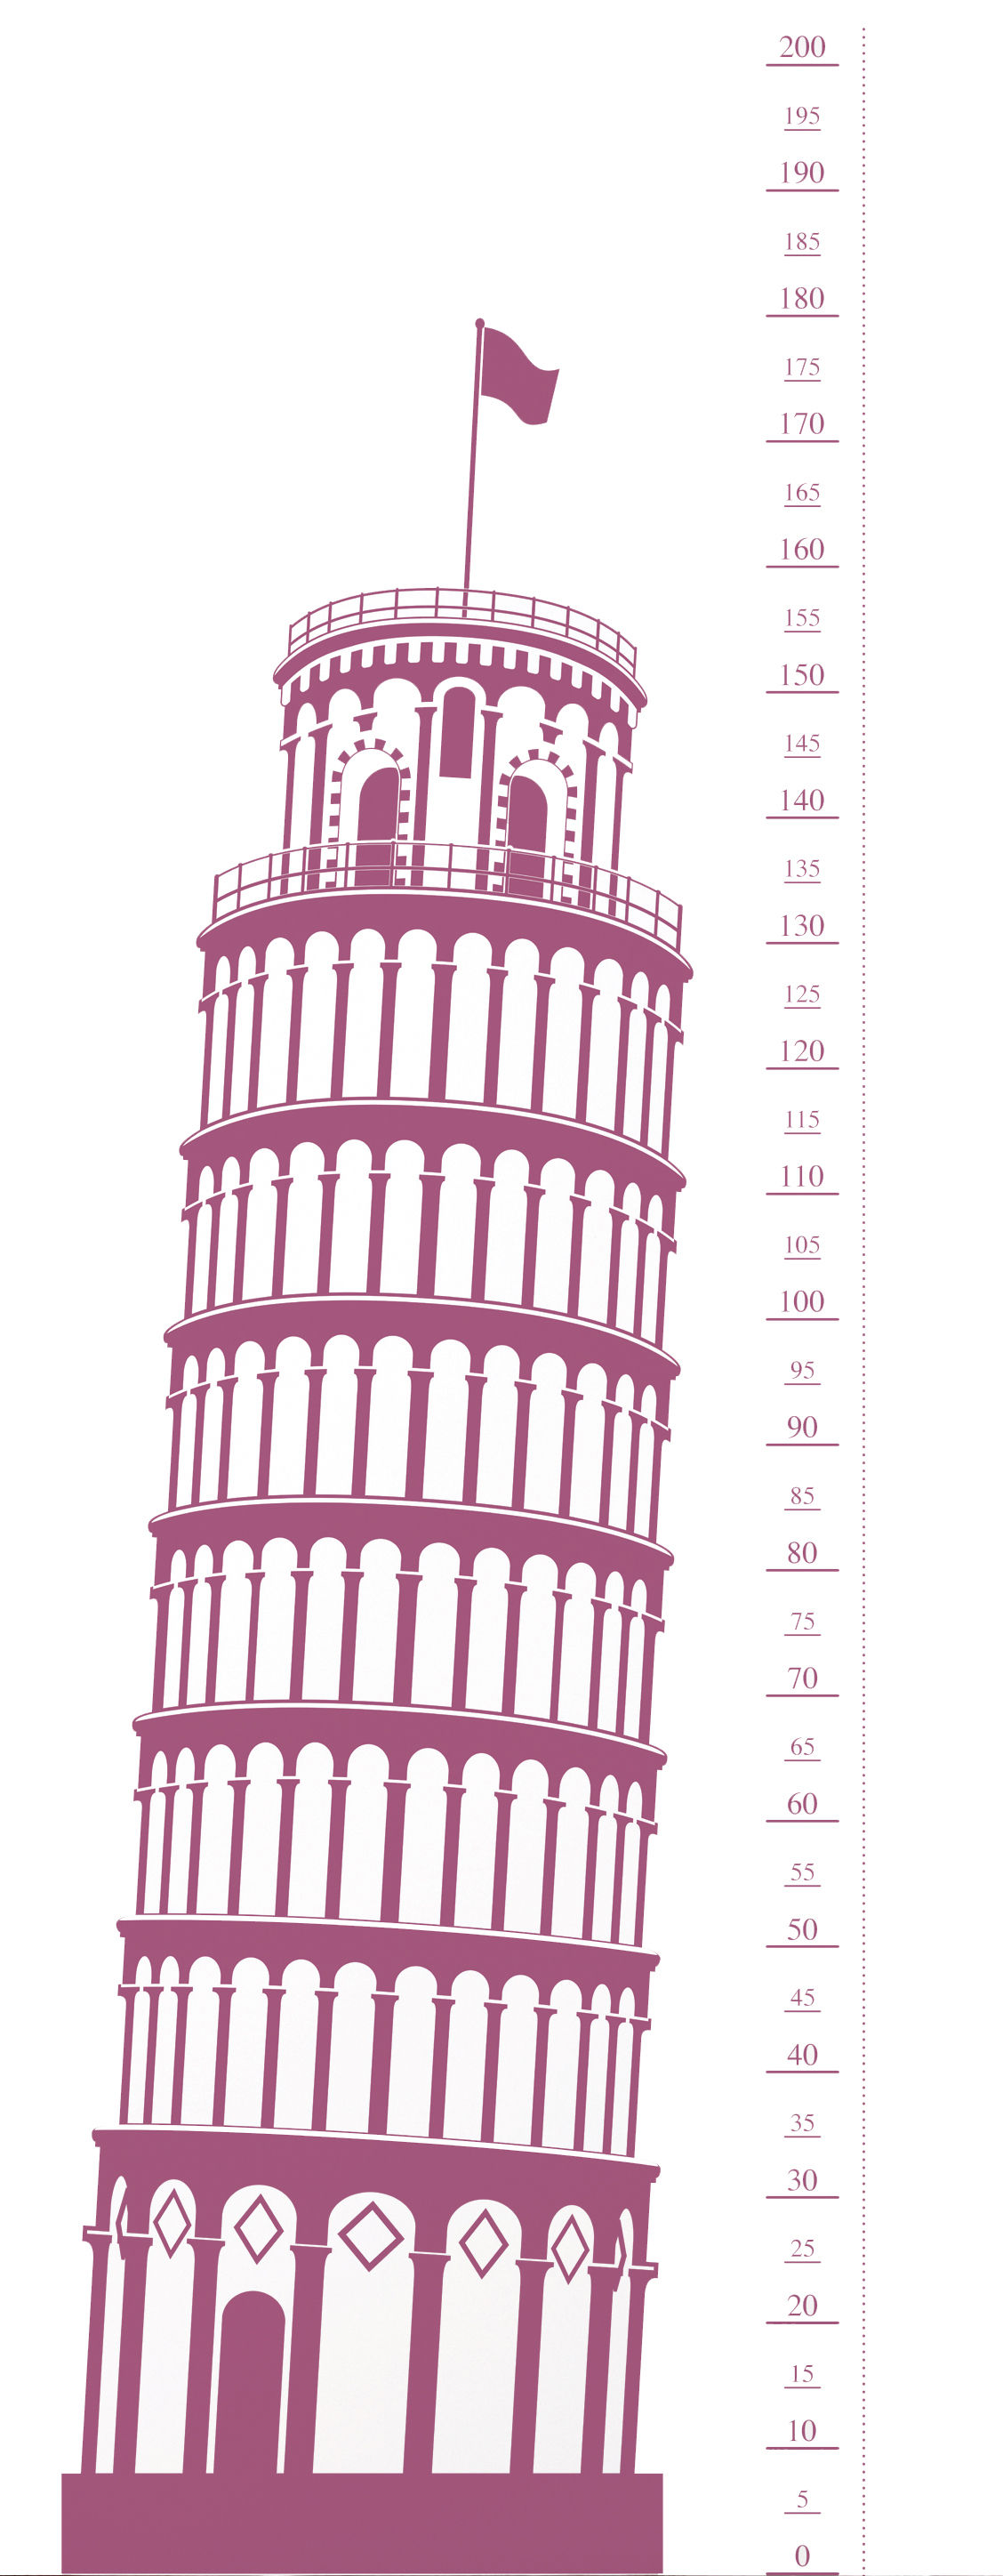 Dekoration - Für Kinder - Measuring Souvenir from Pisa Sticker Messlatte - Domestic - Rosa - Vinyl